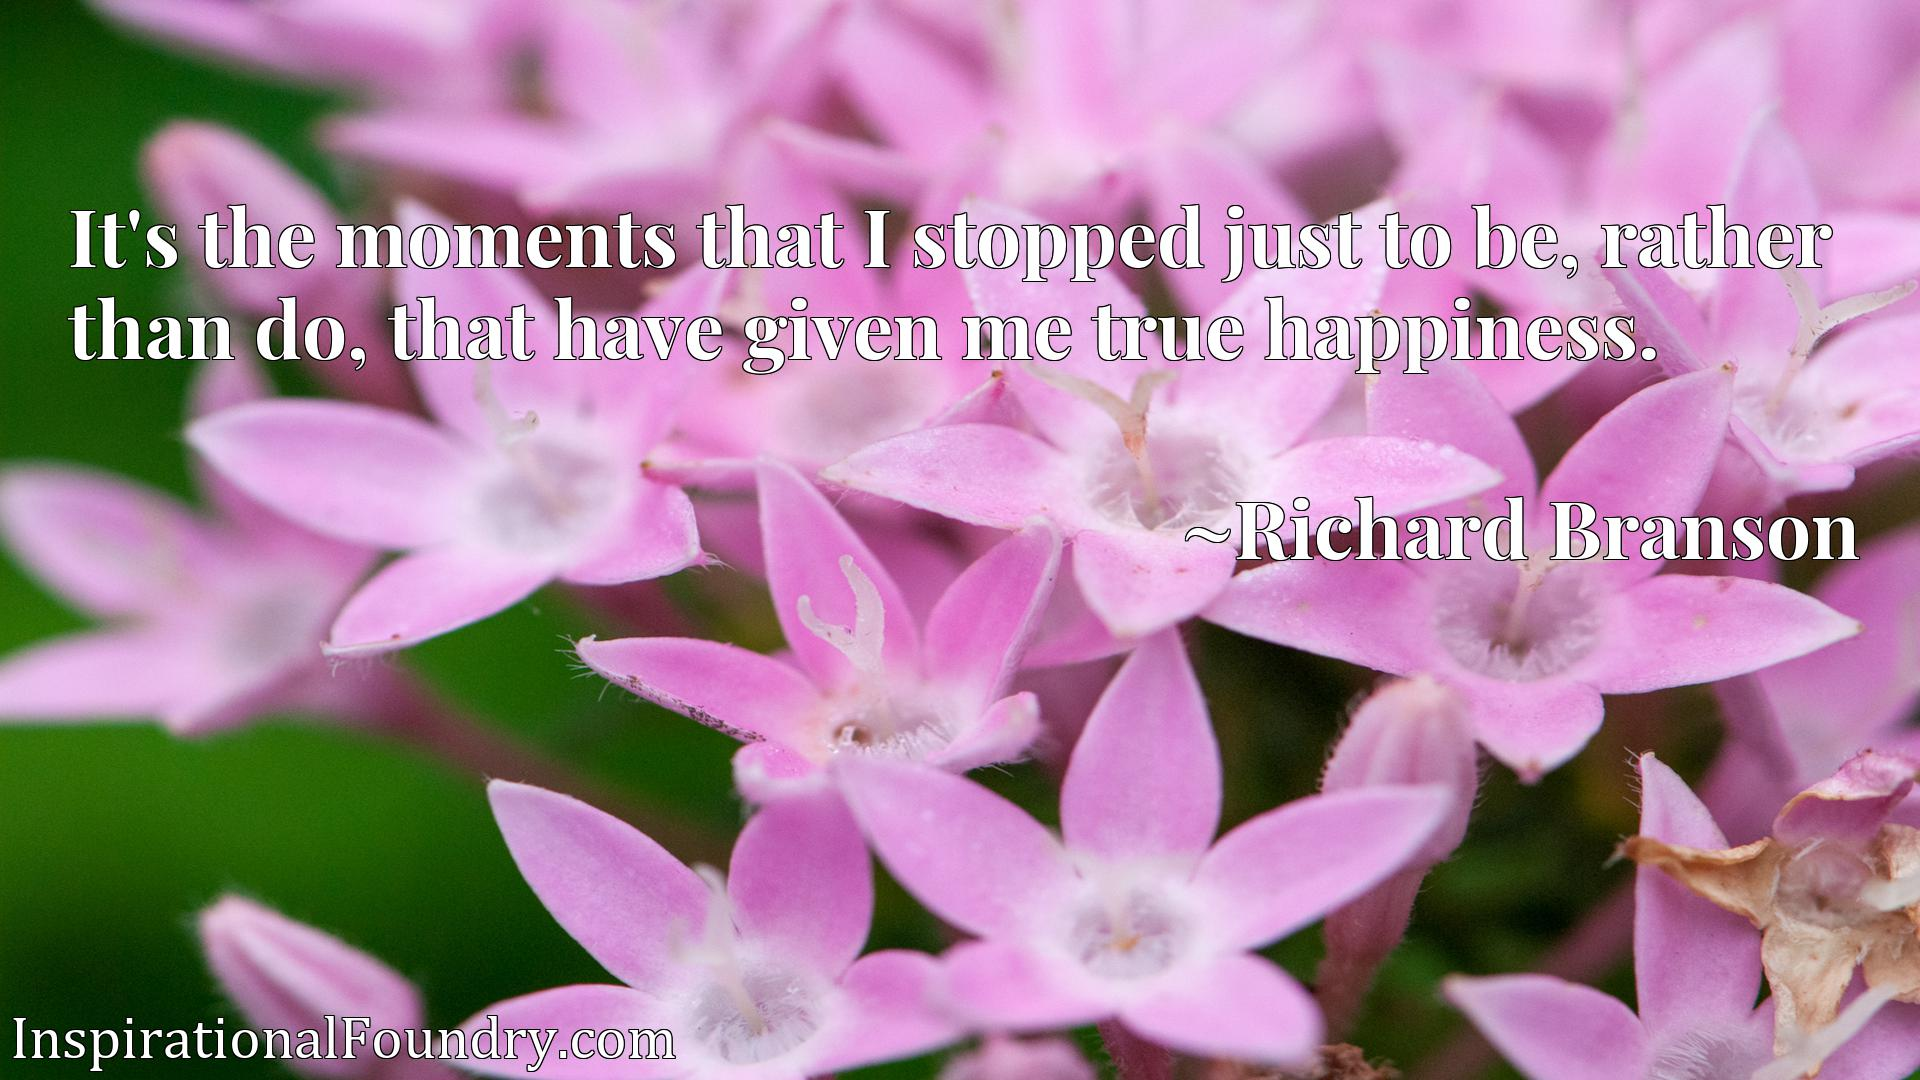 Quote Picture :It's the moments that I stopped just to be, rather than do, that have given me true happiness.